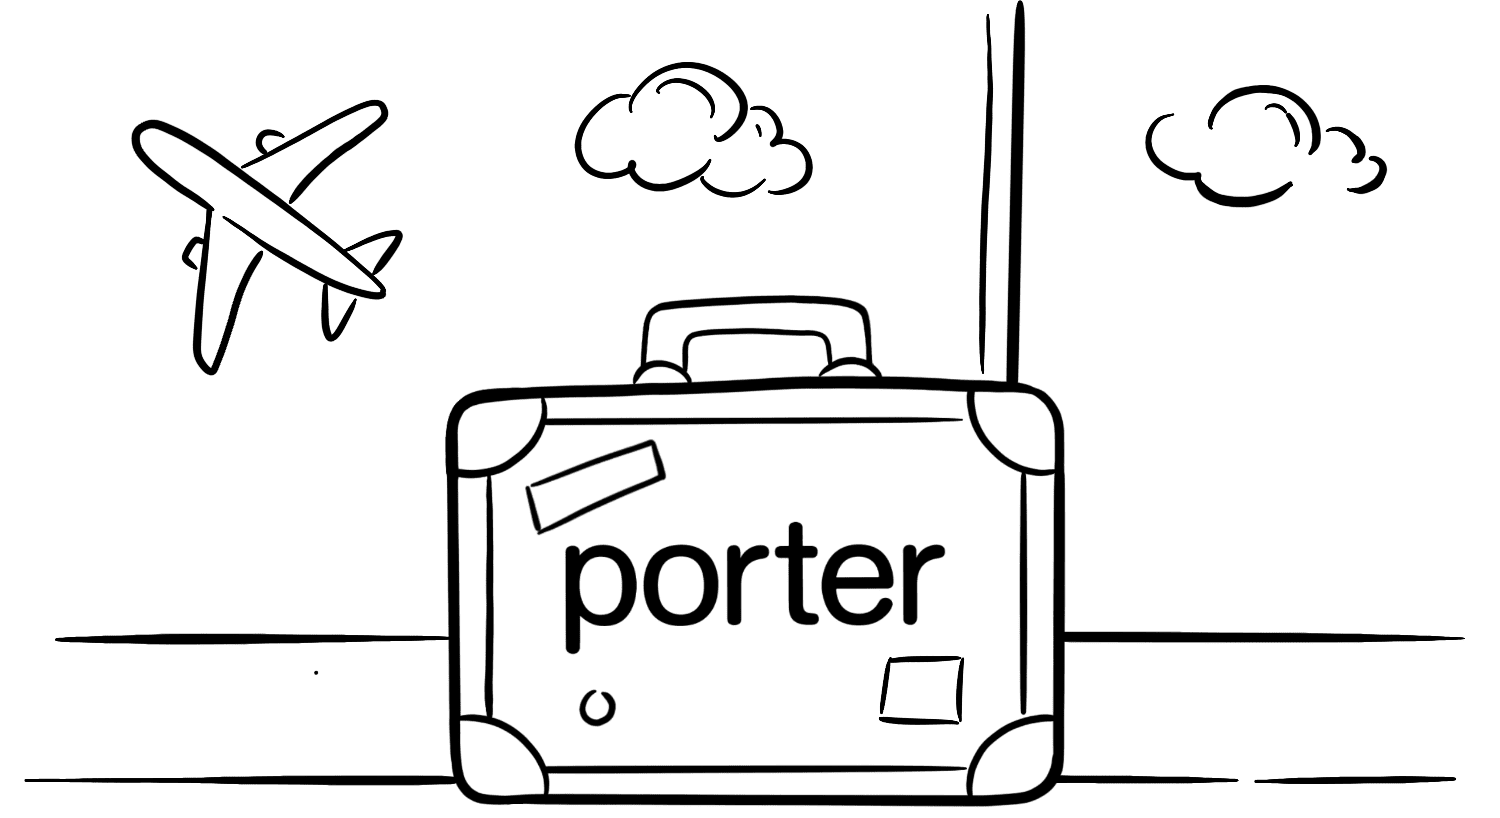 Illustration: A travel briefcase with the Porter logo. Airplane in the background and clouds.